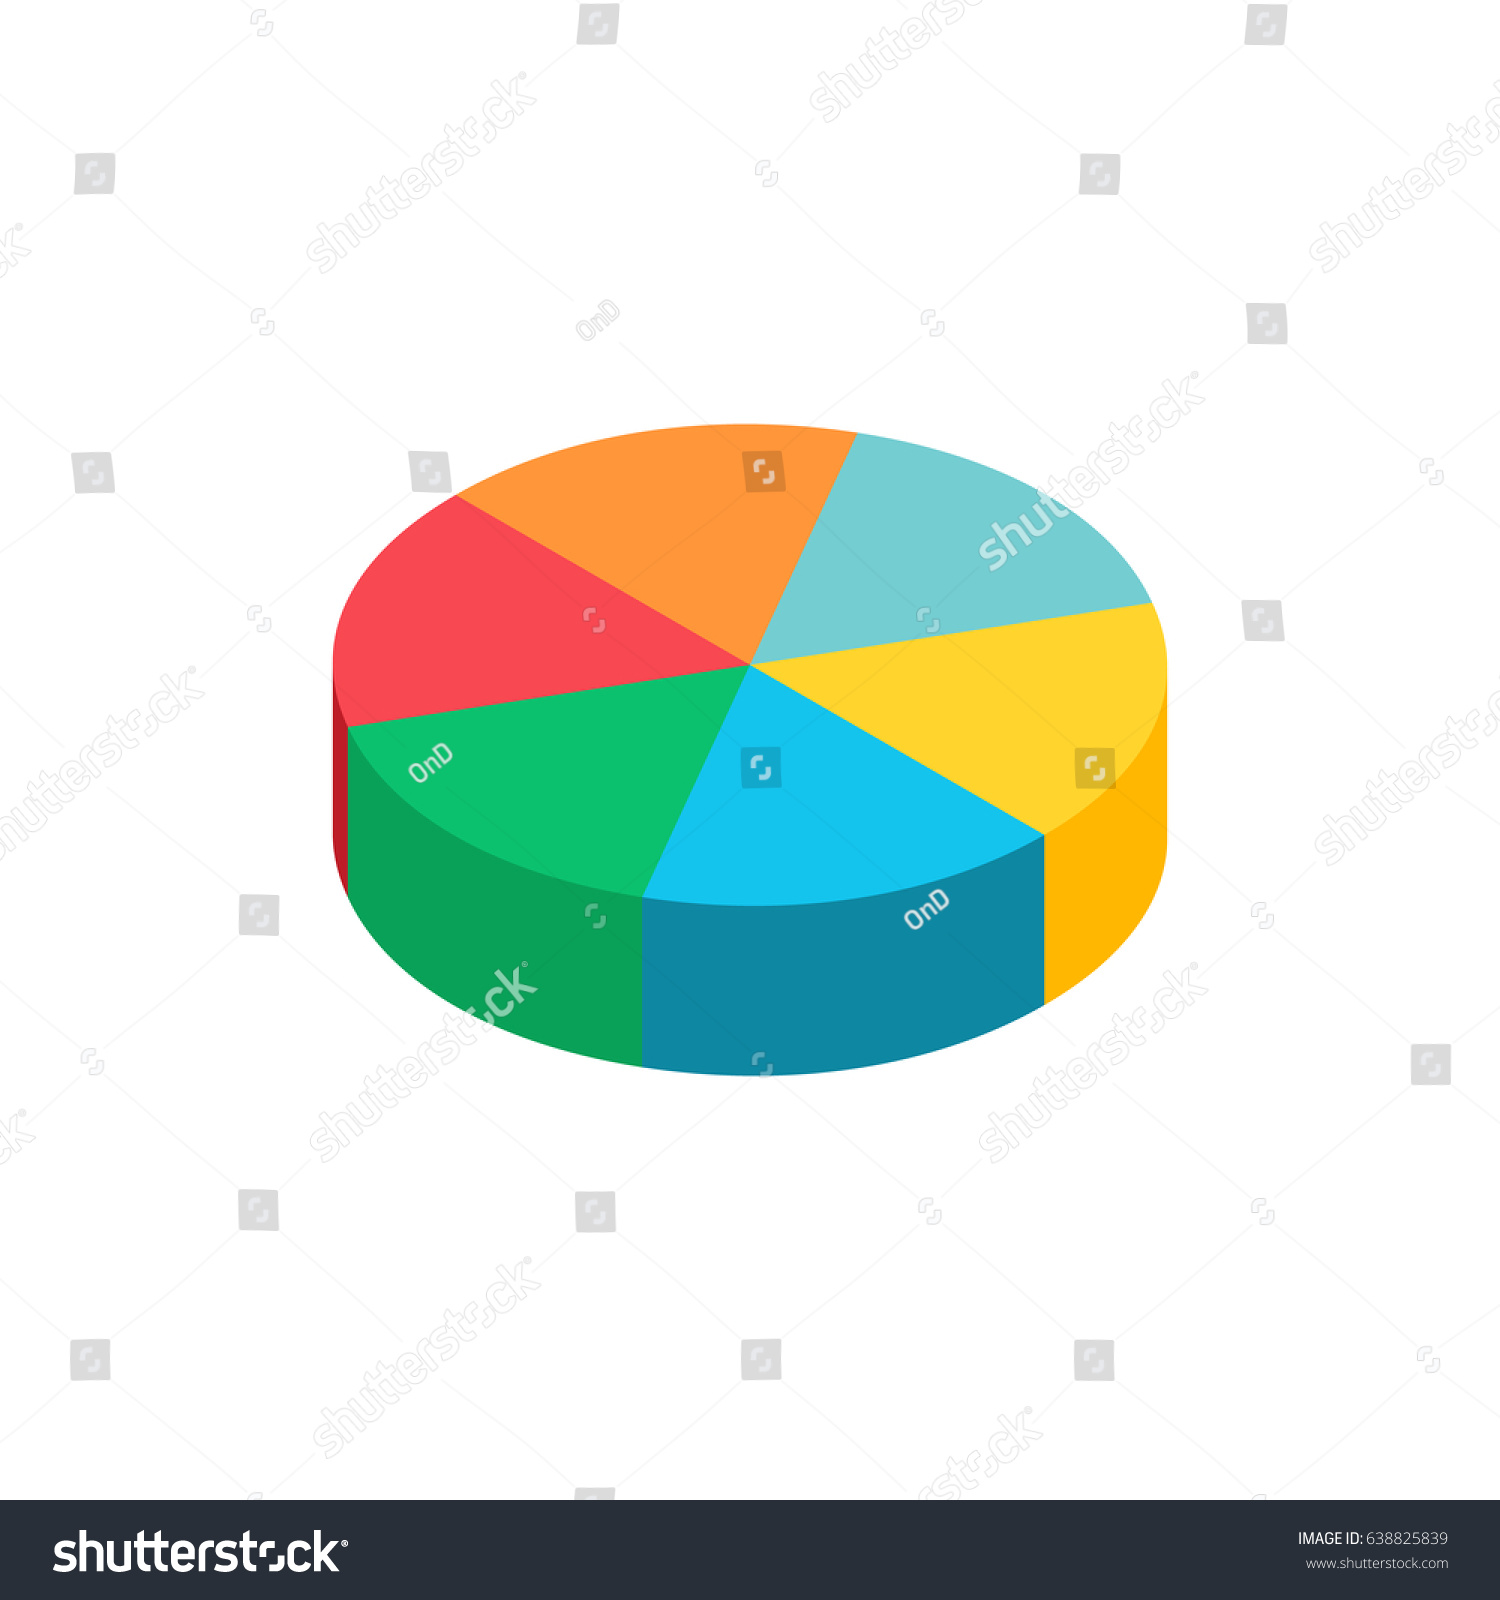 bulk isometric pie graph. template realistic three-dimensional pie